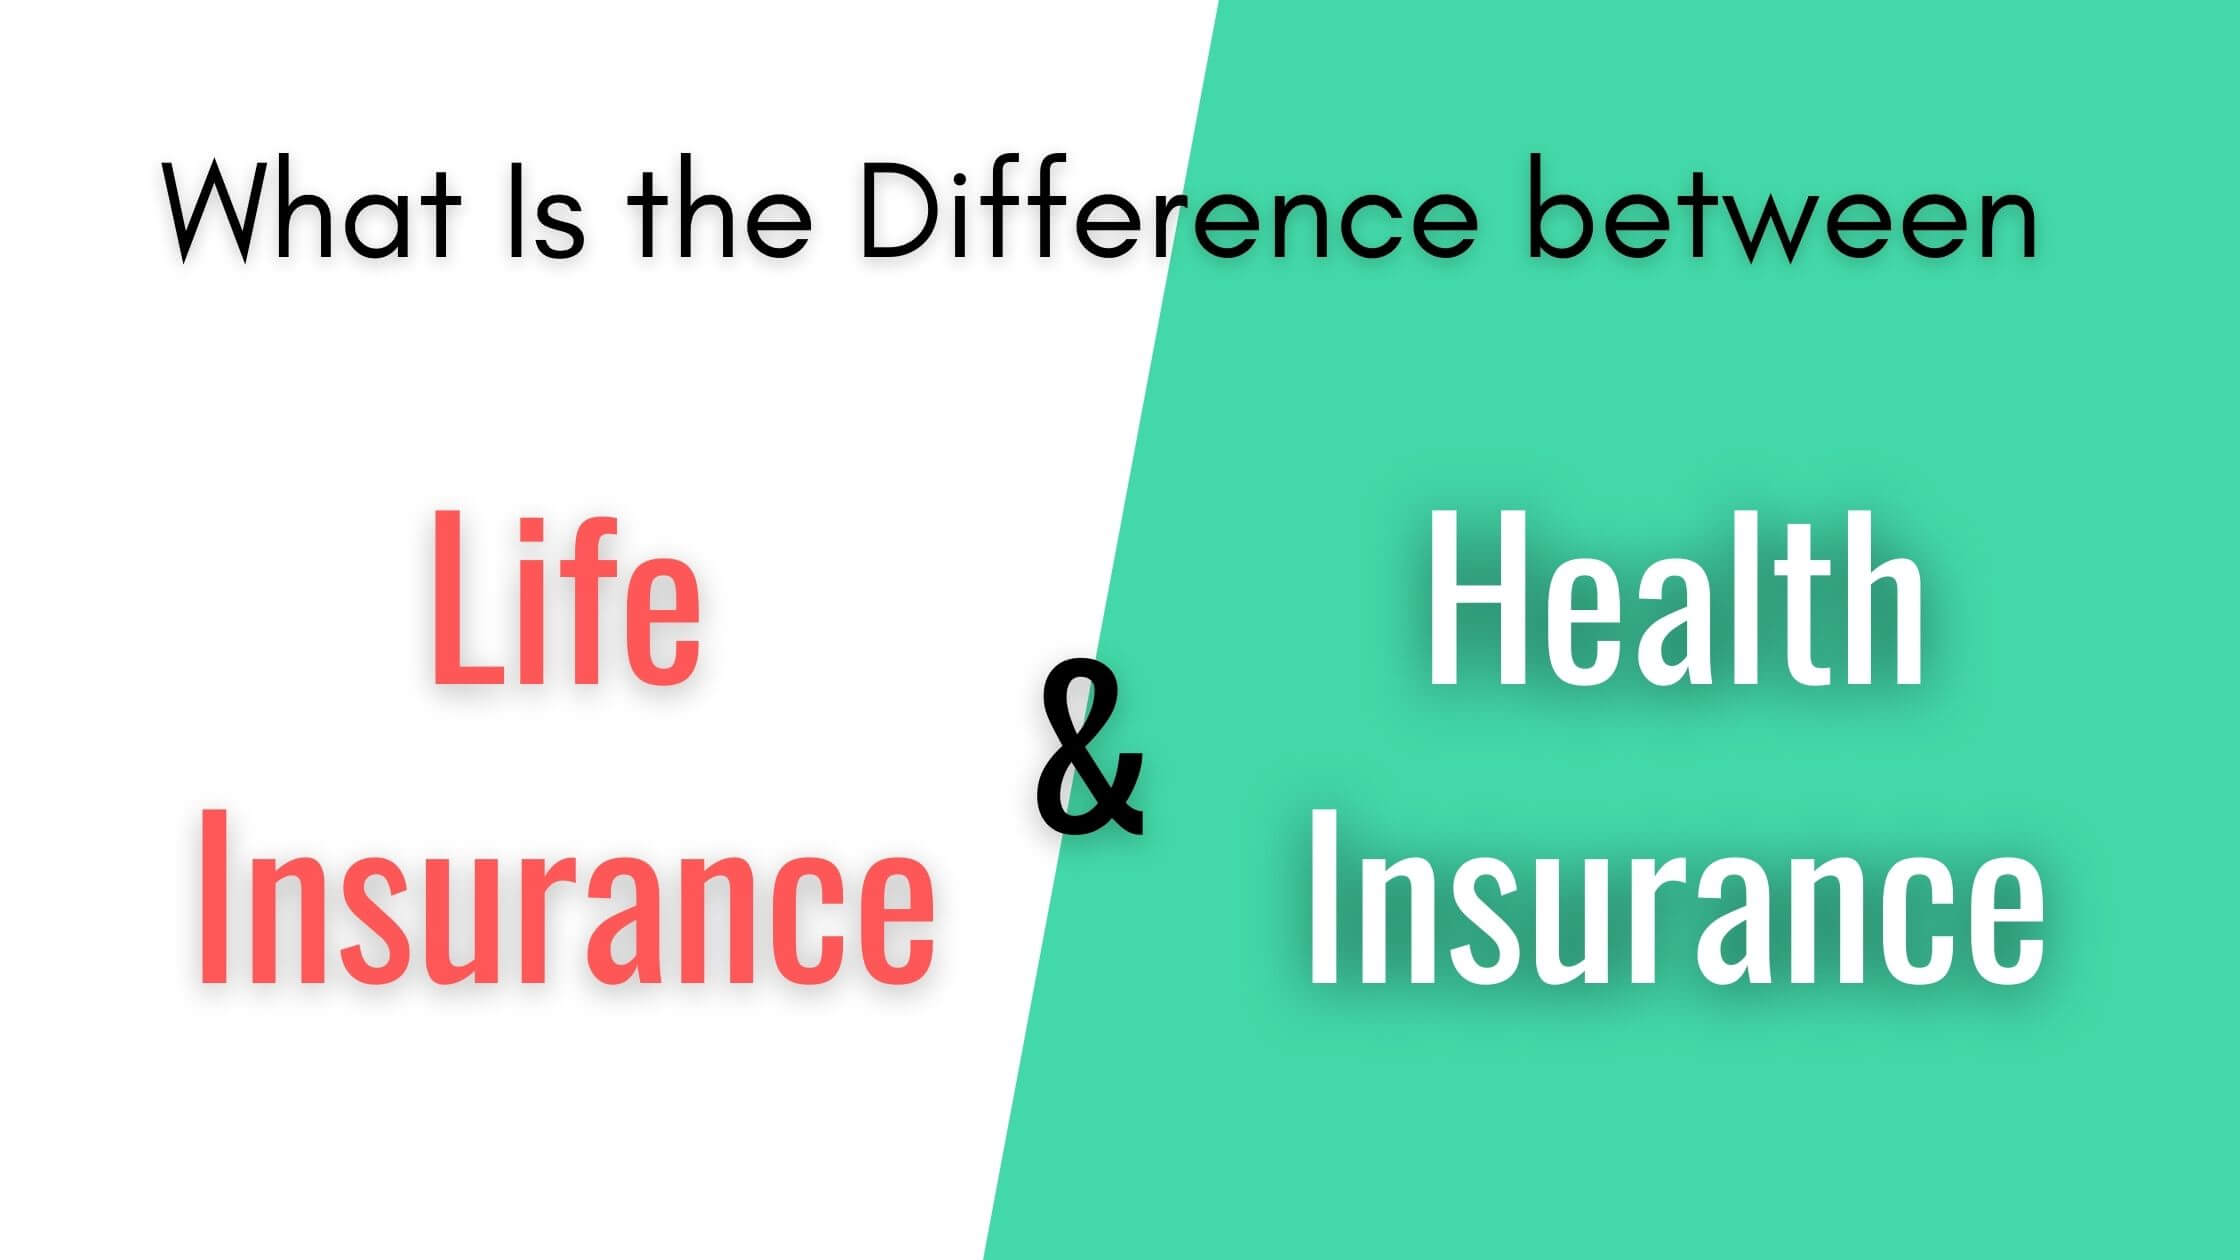 What Is the Difference between Life Insurance and Health Insurance?